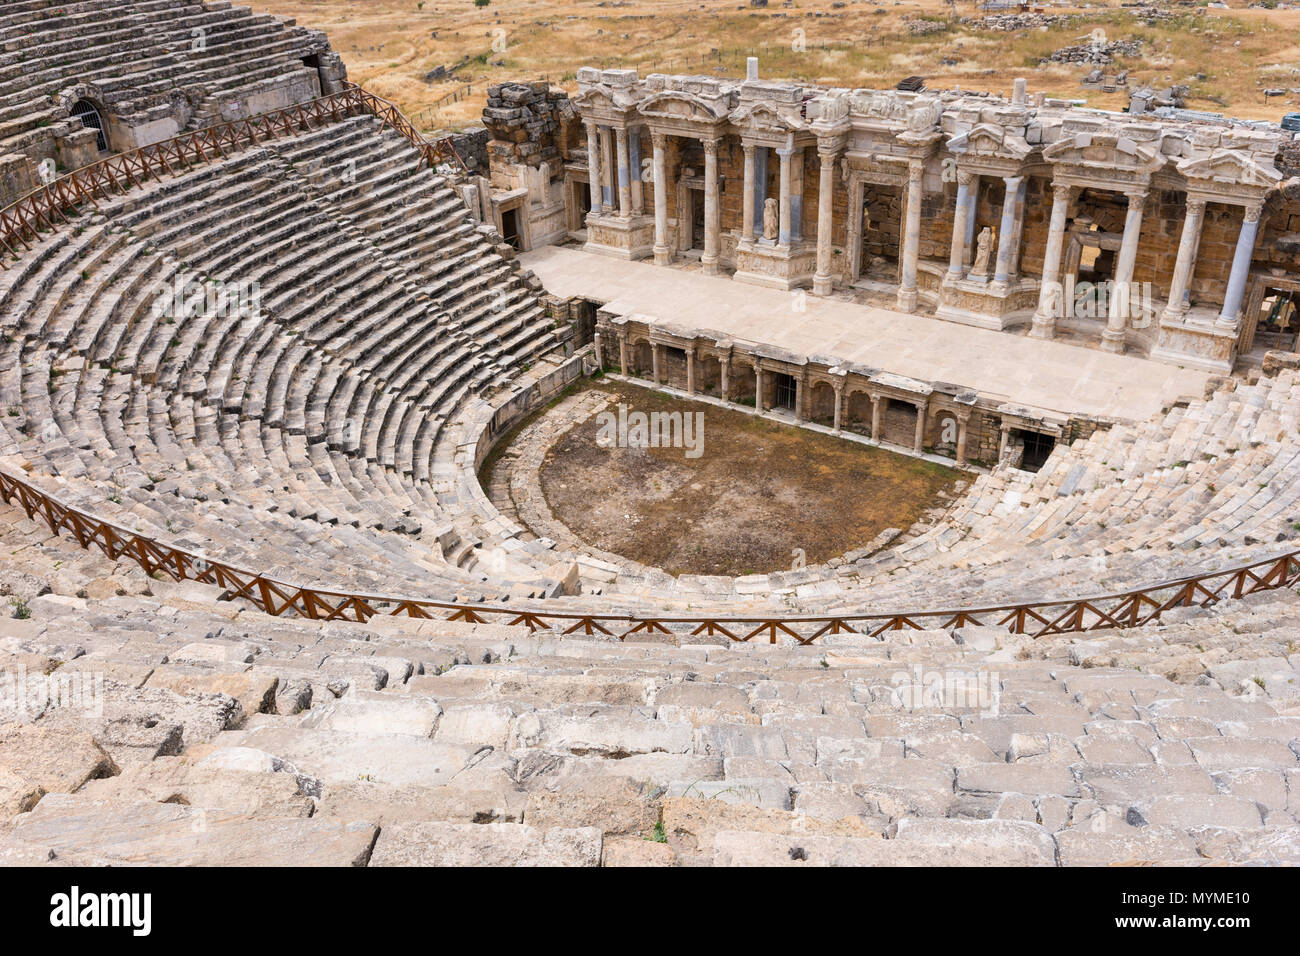 The ancient stone theatre and Greek amphitheatre in Hierapolis near Pamukkale in Turkey now a UNESCO World Heritage Site viewed looking down from the  - Stock Image